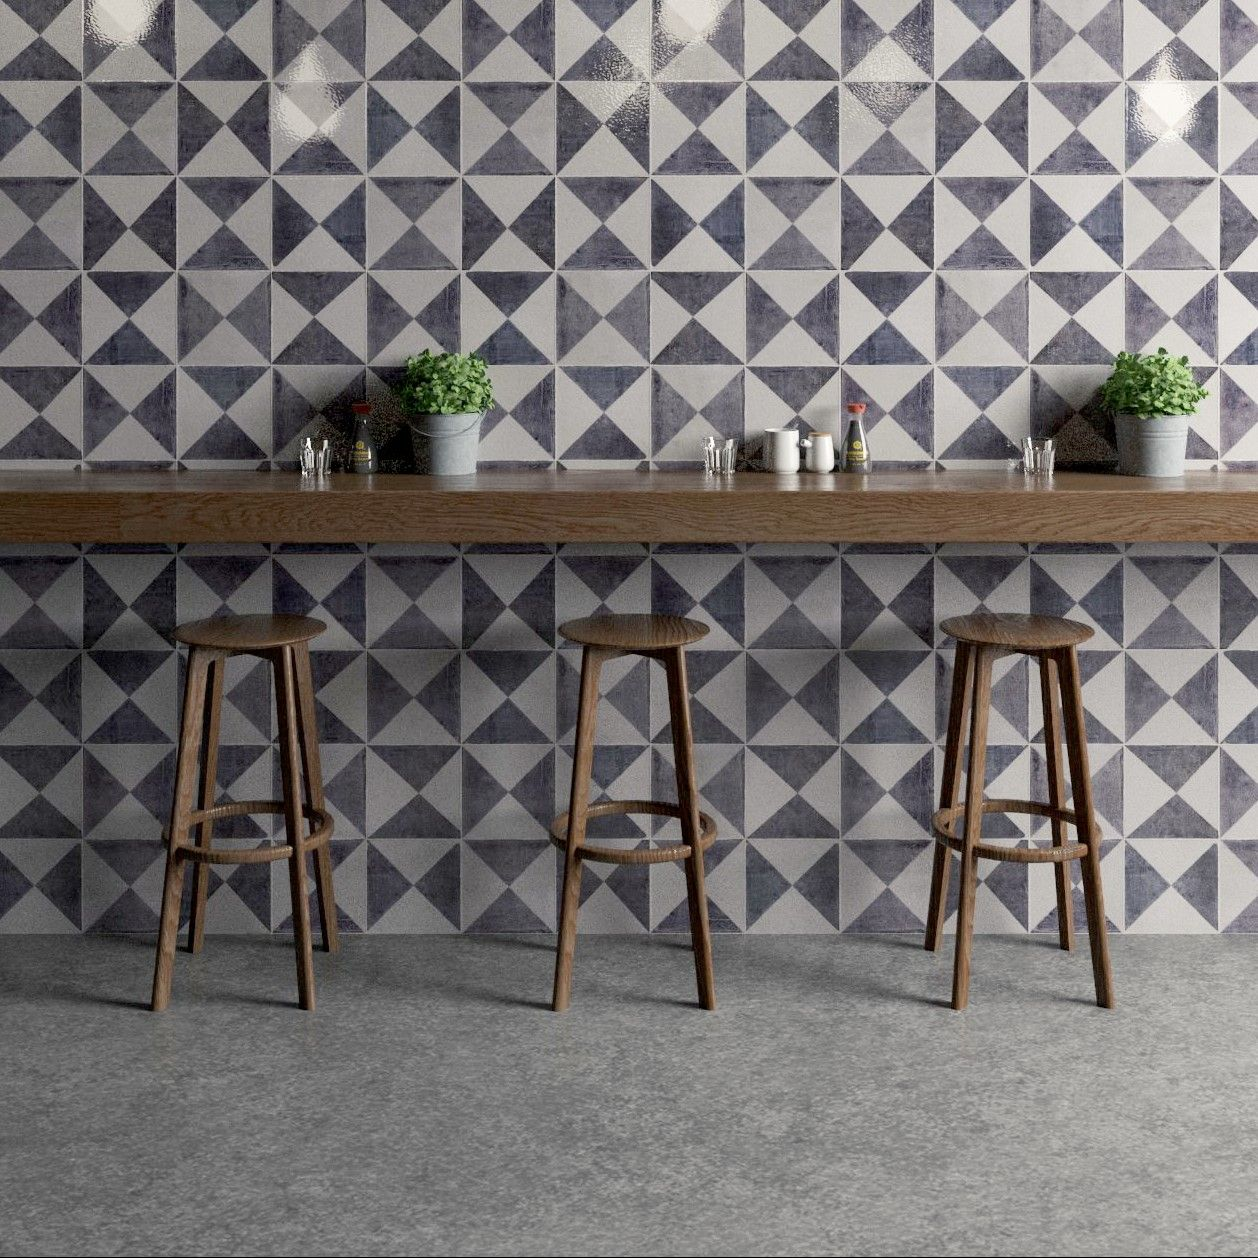 Hallway furniture b&m  Gorgeous grey geometric tiles by Bert u May as seen on Beautiful